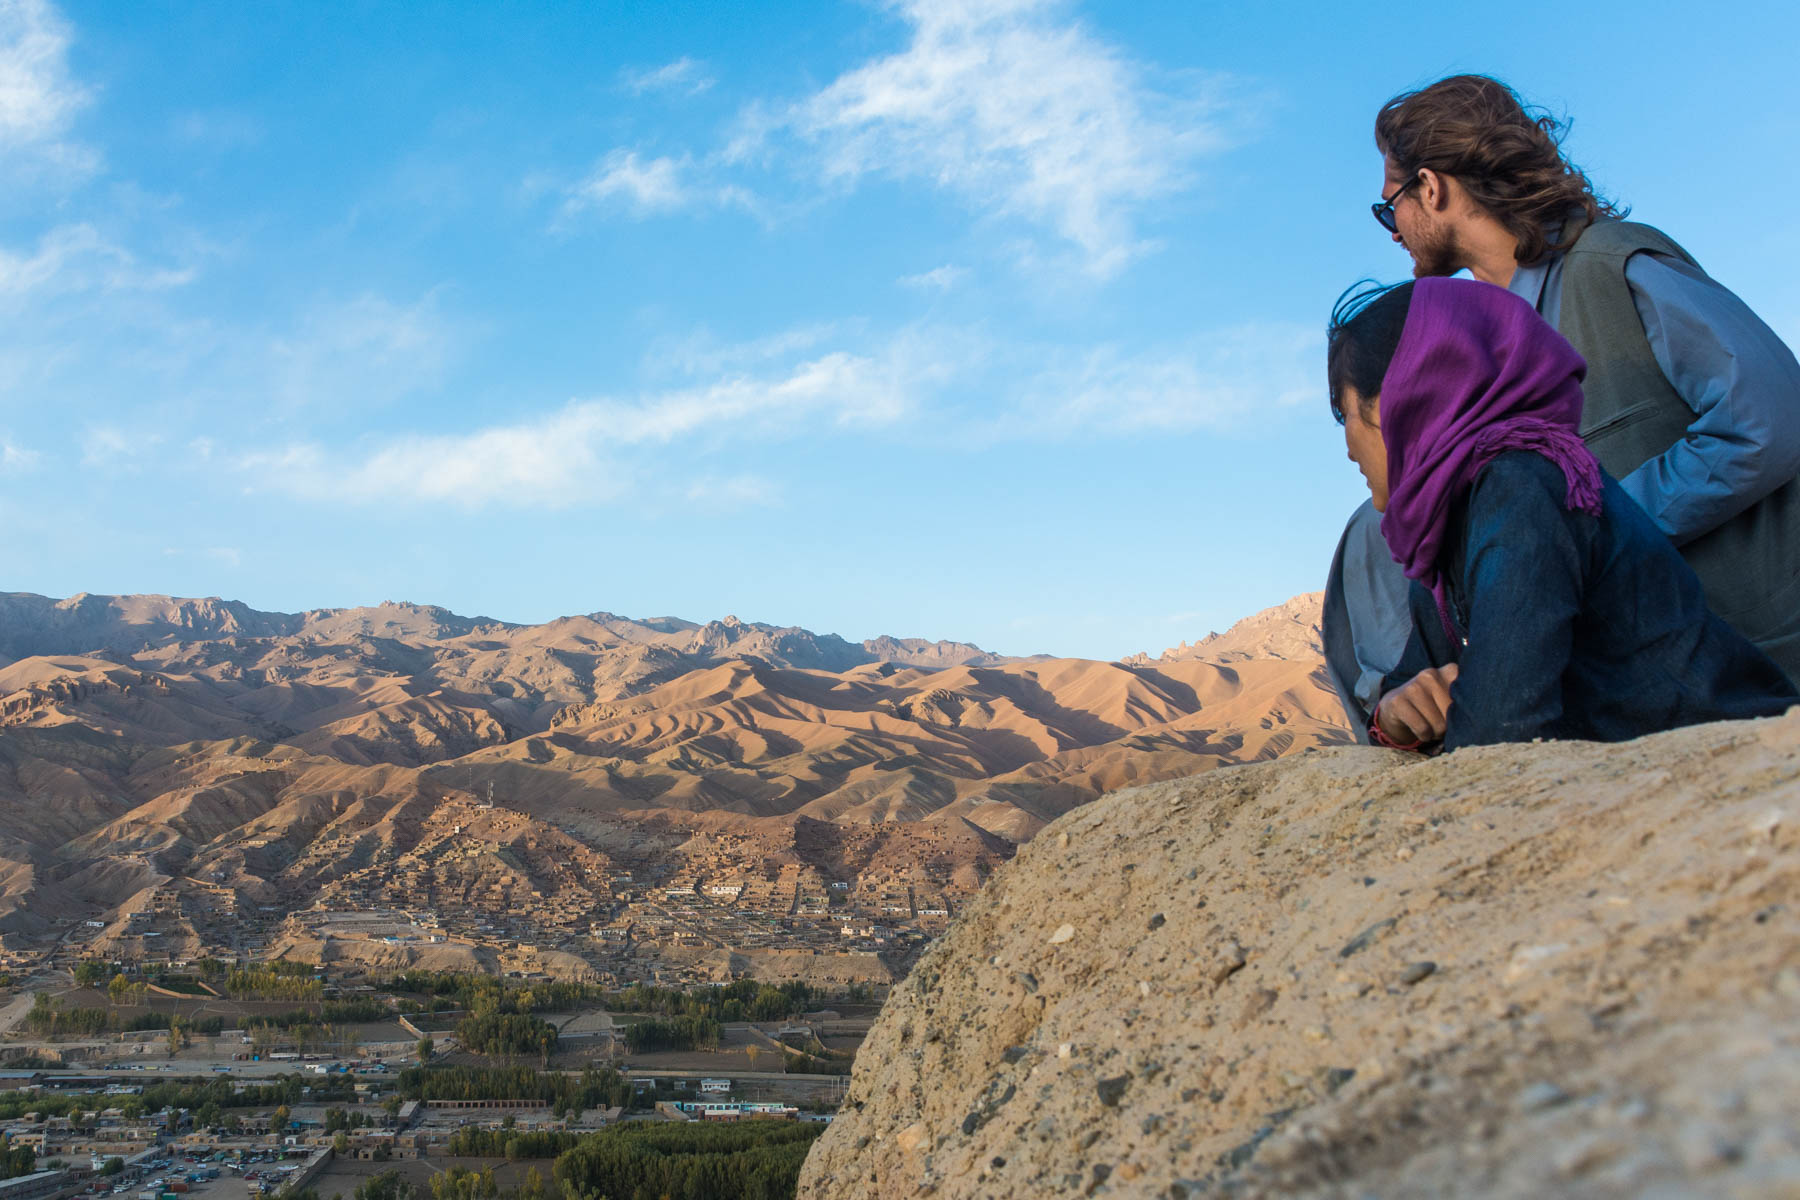 Overlooking Bamyan, Afghanistan at sunset - Lost With Purpose